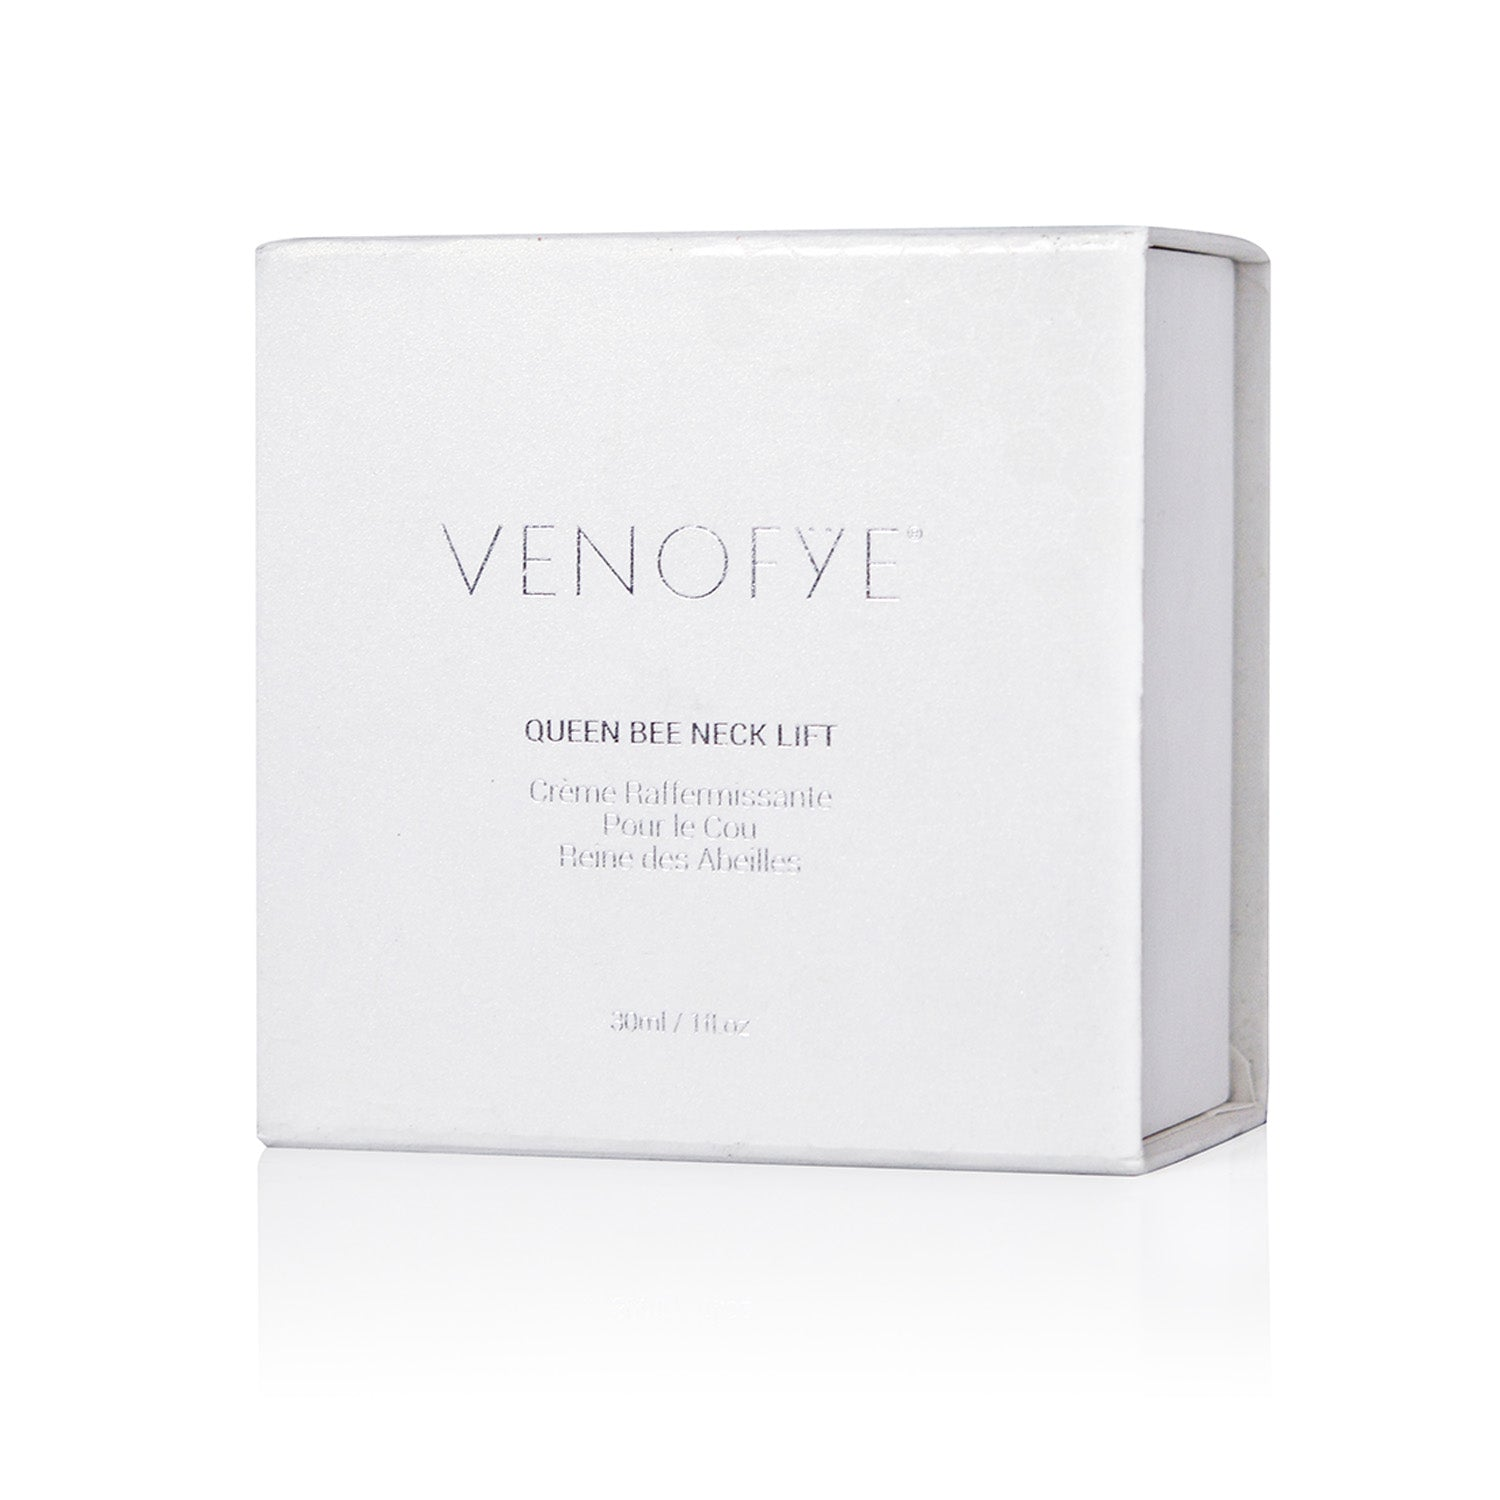 Venofye Queen Bee Neck Wrinkle Cream